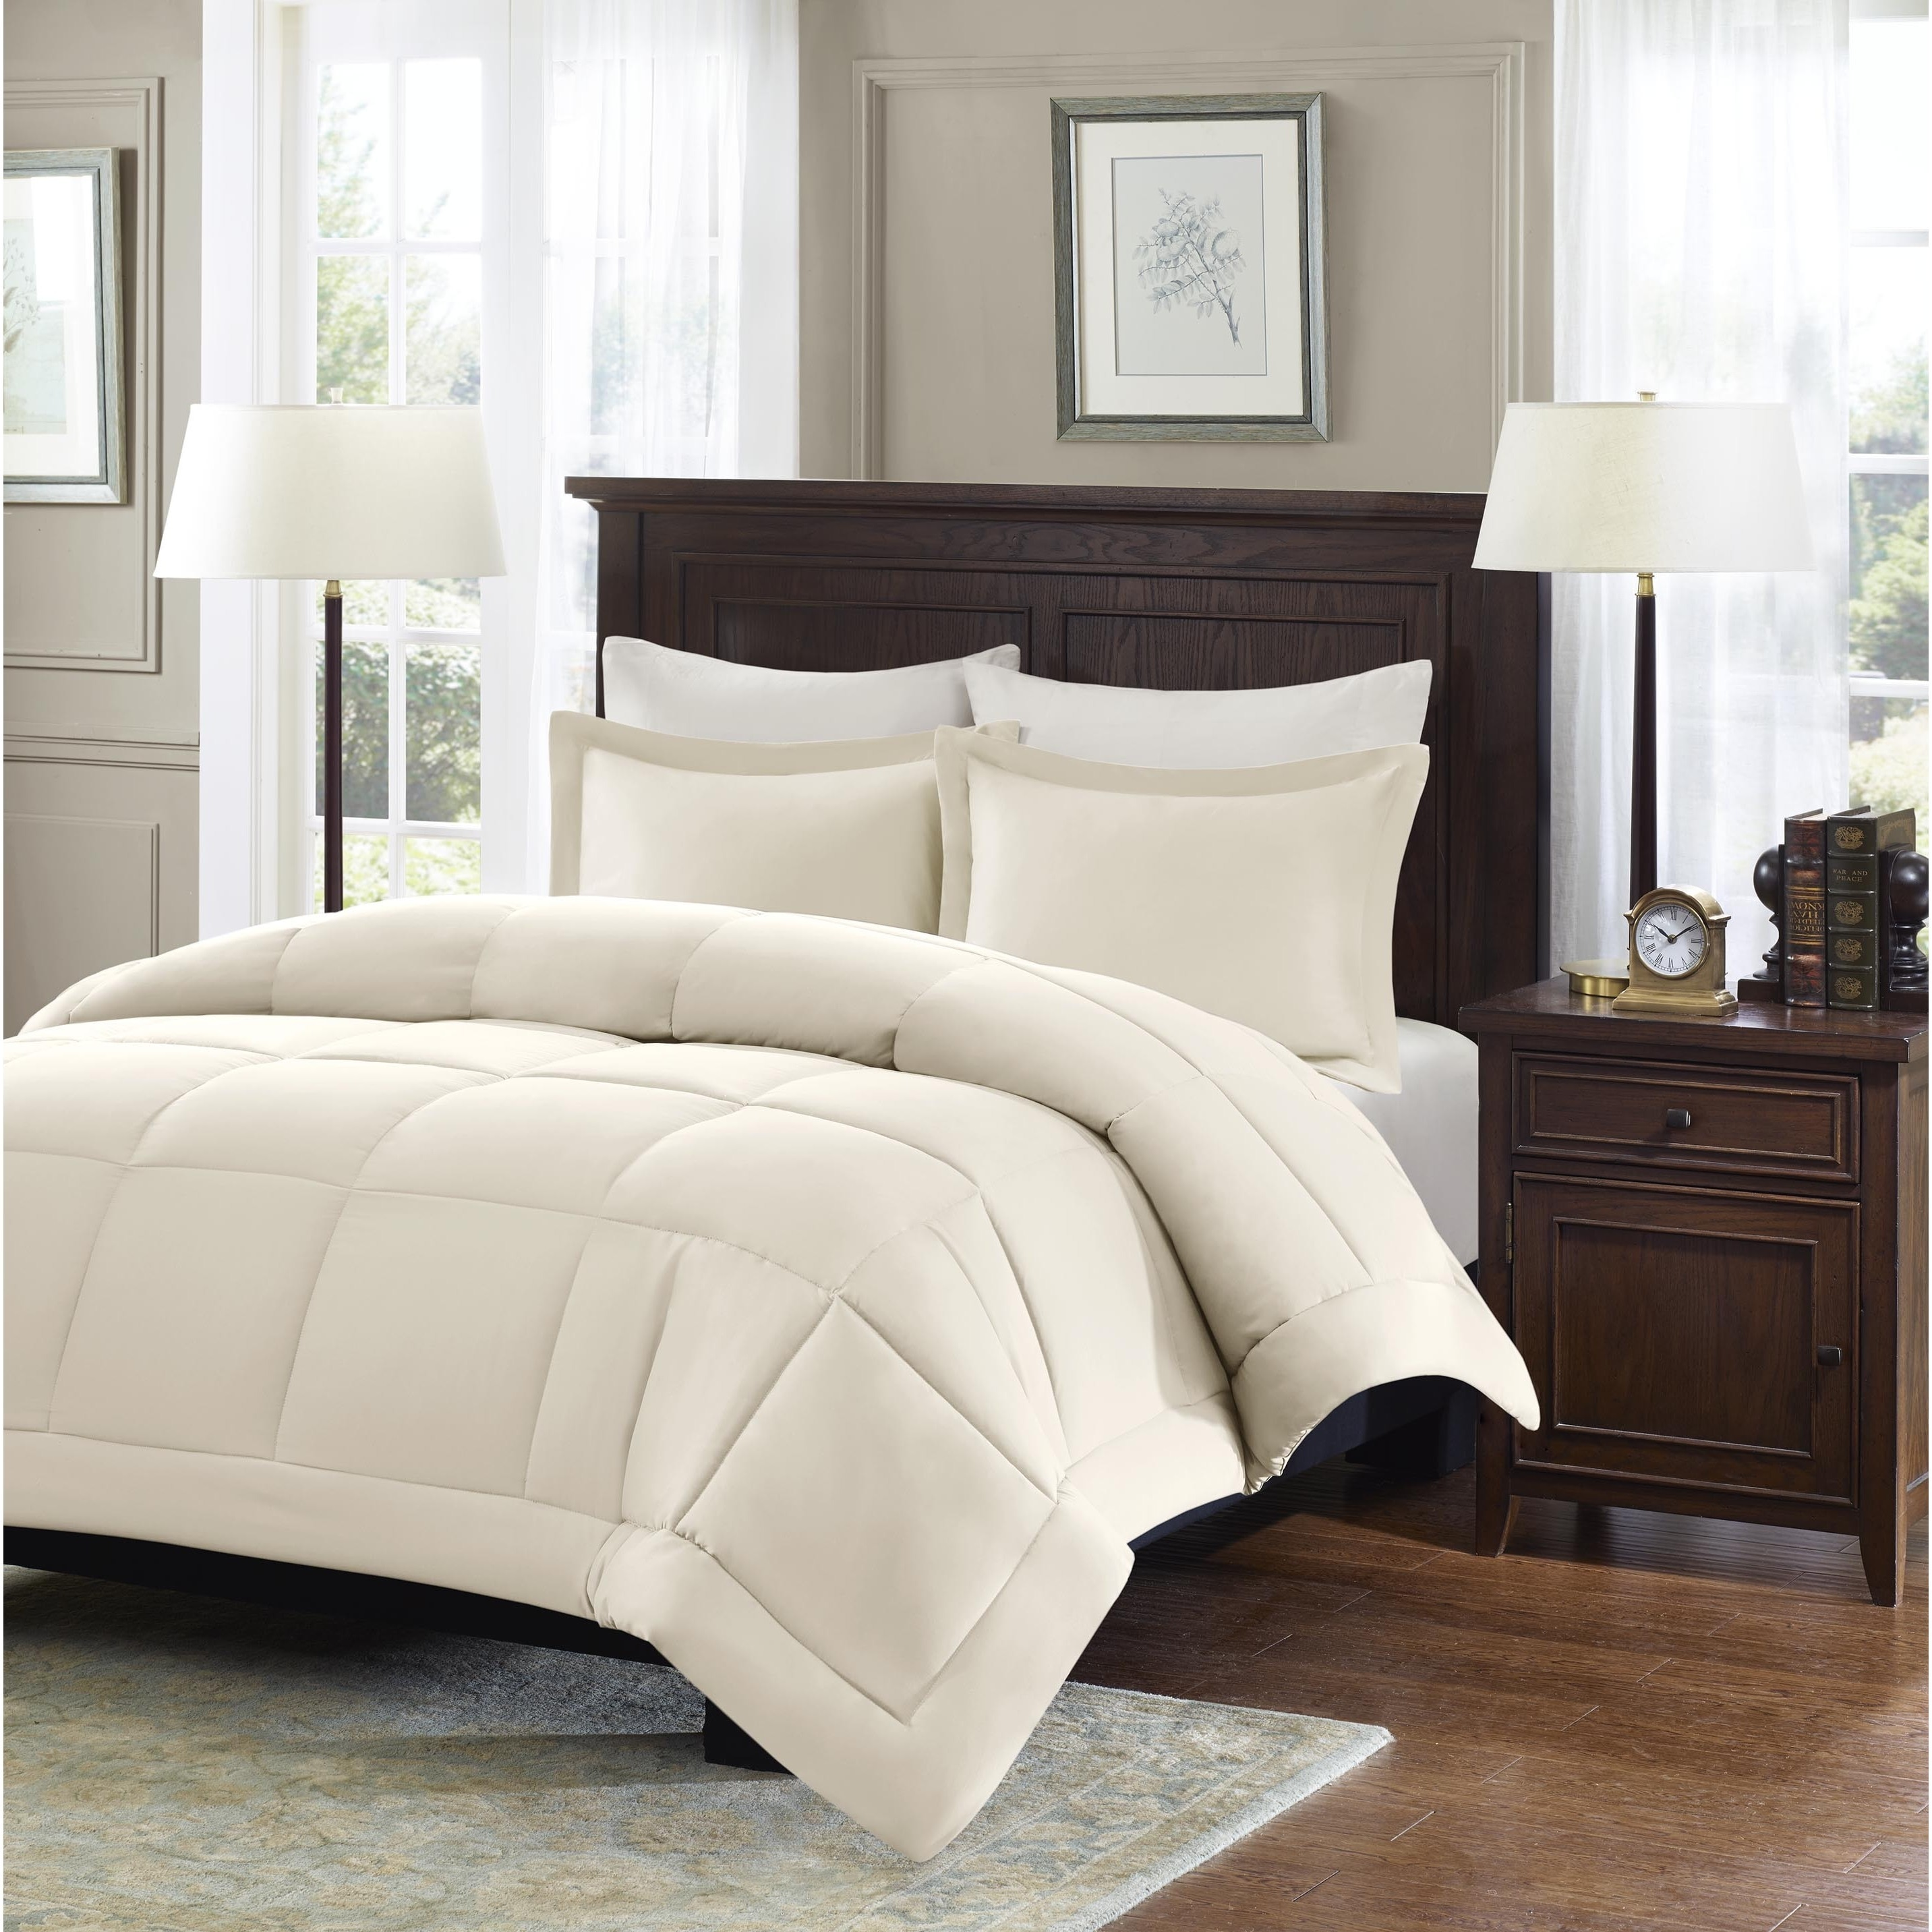 Comfort classics belford microcell down alternative comforter set walmart com